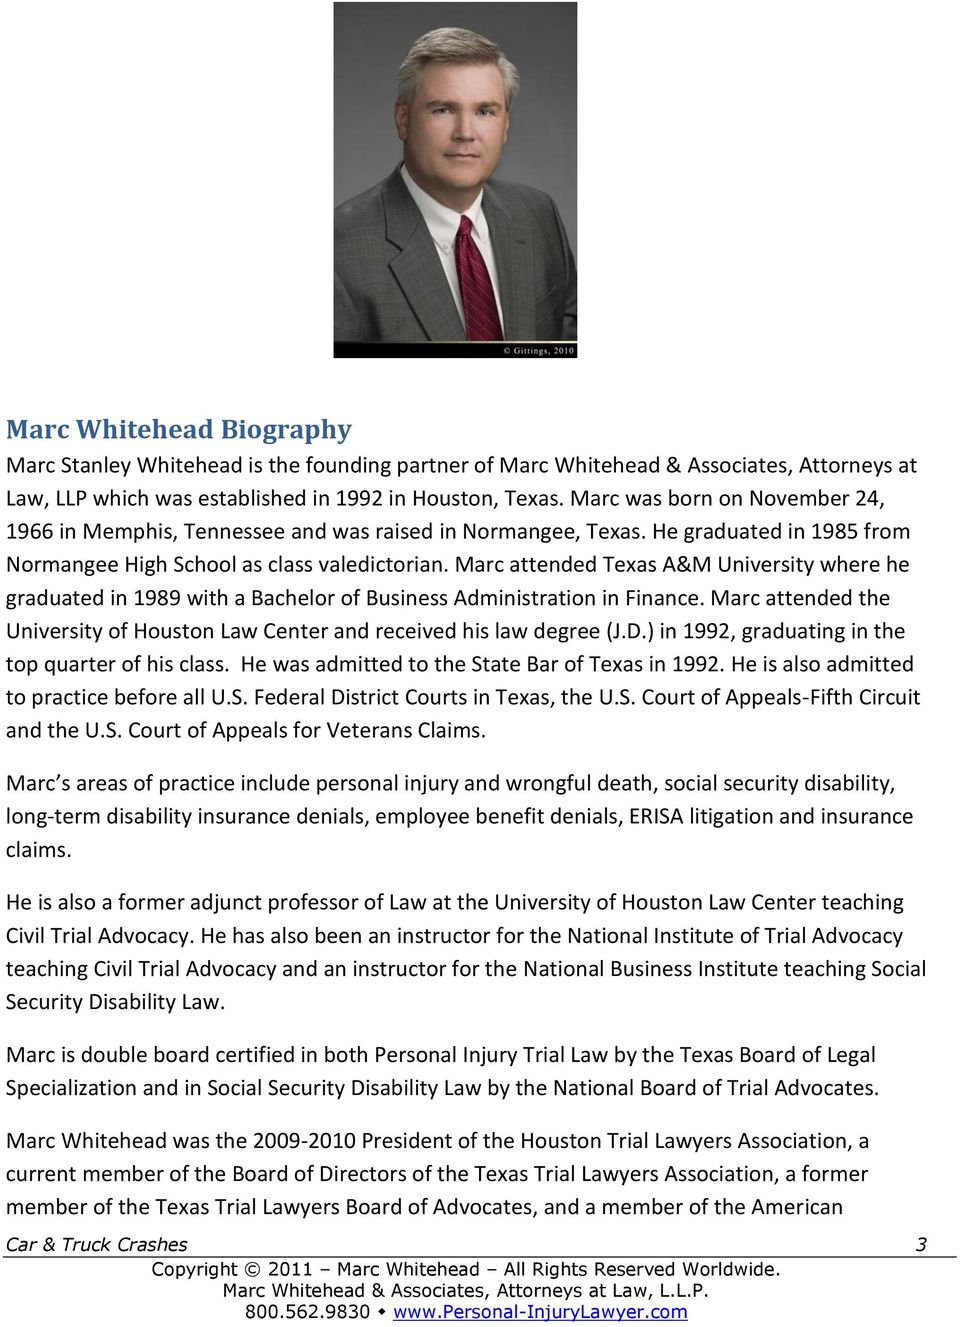 Marc attended Texas A&M University where he graduated in 1989 with a Bachelor of Business Administration in Finance. Marc attended the University of Houston Law Center and received his law degree (J.